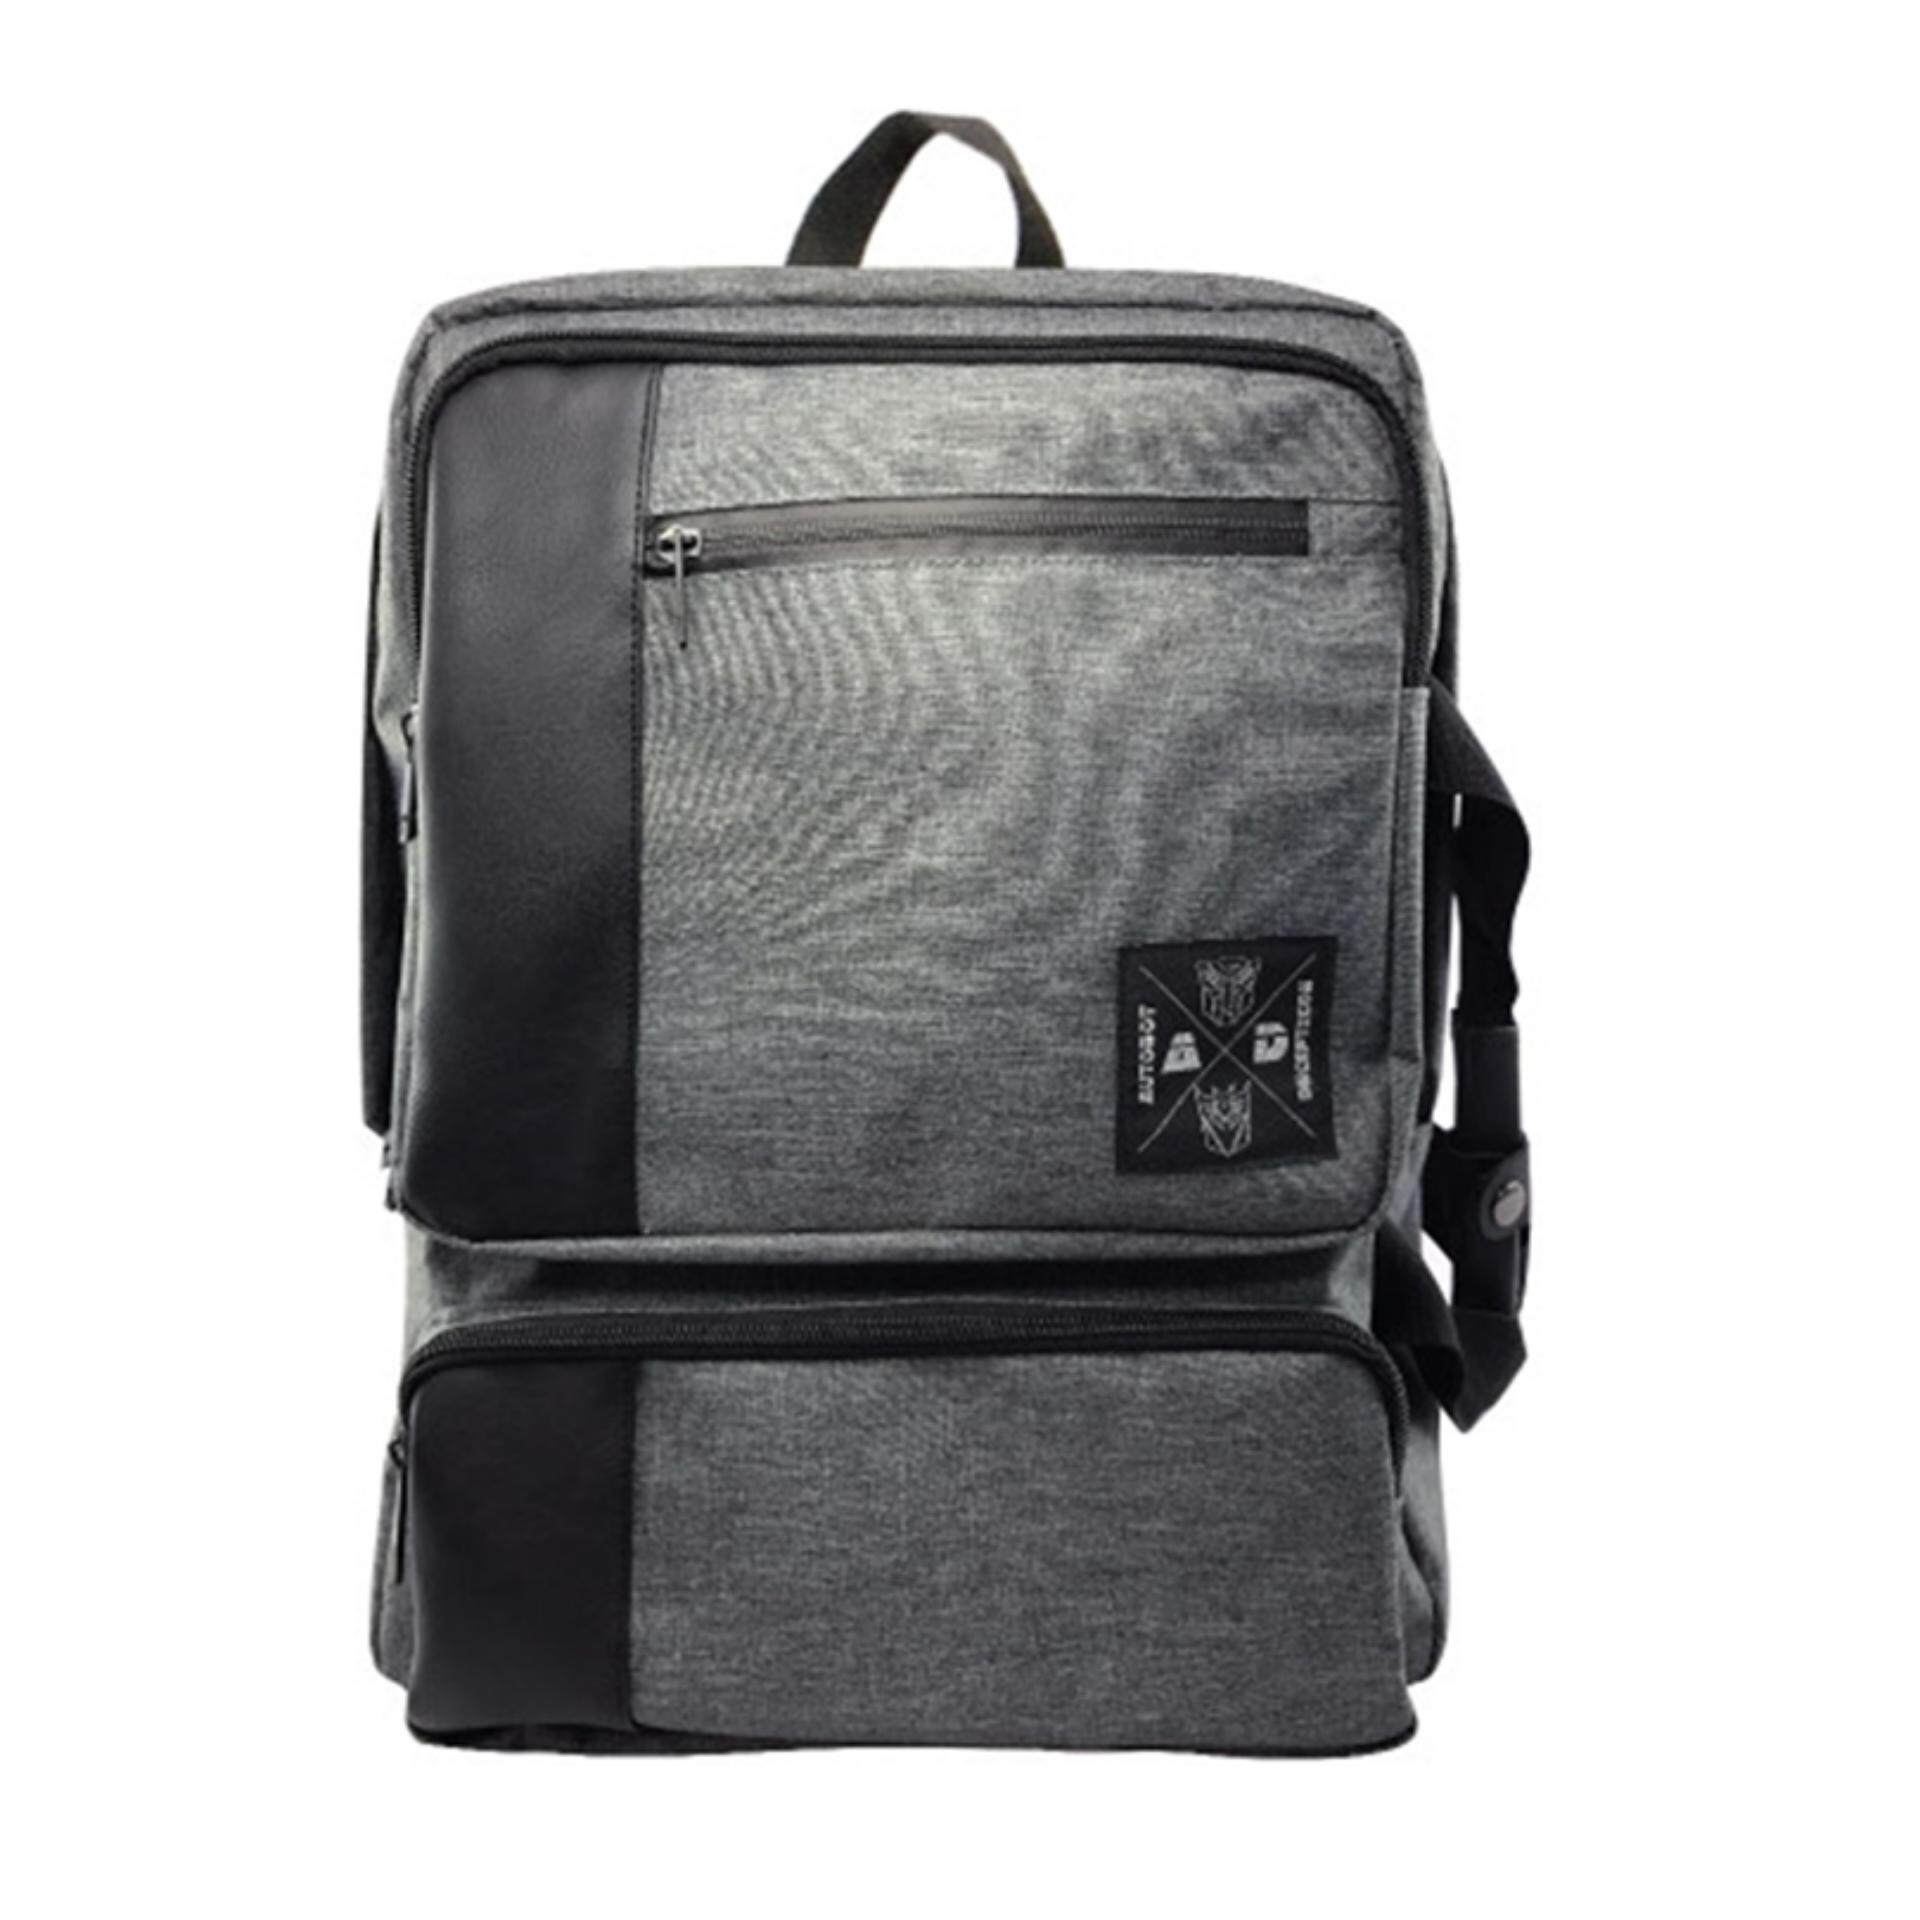 Transformers The Last Knight Adult Backpack School Bag - Grey Colour